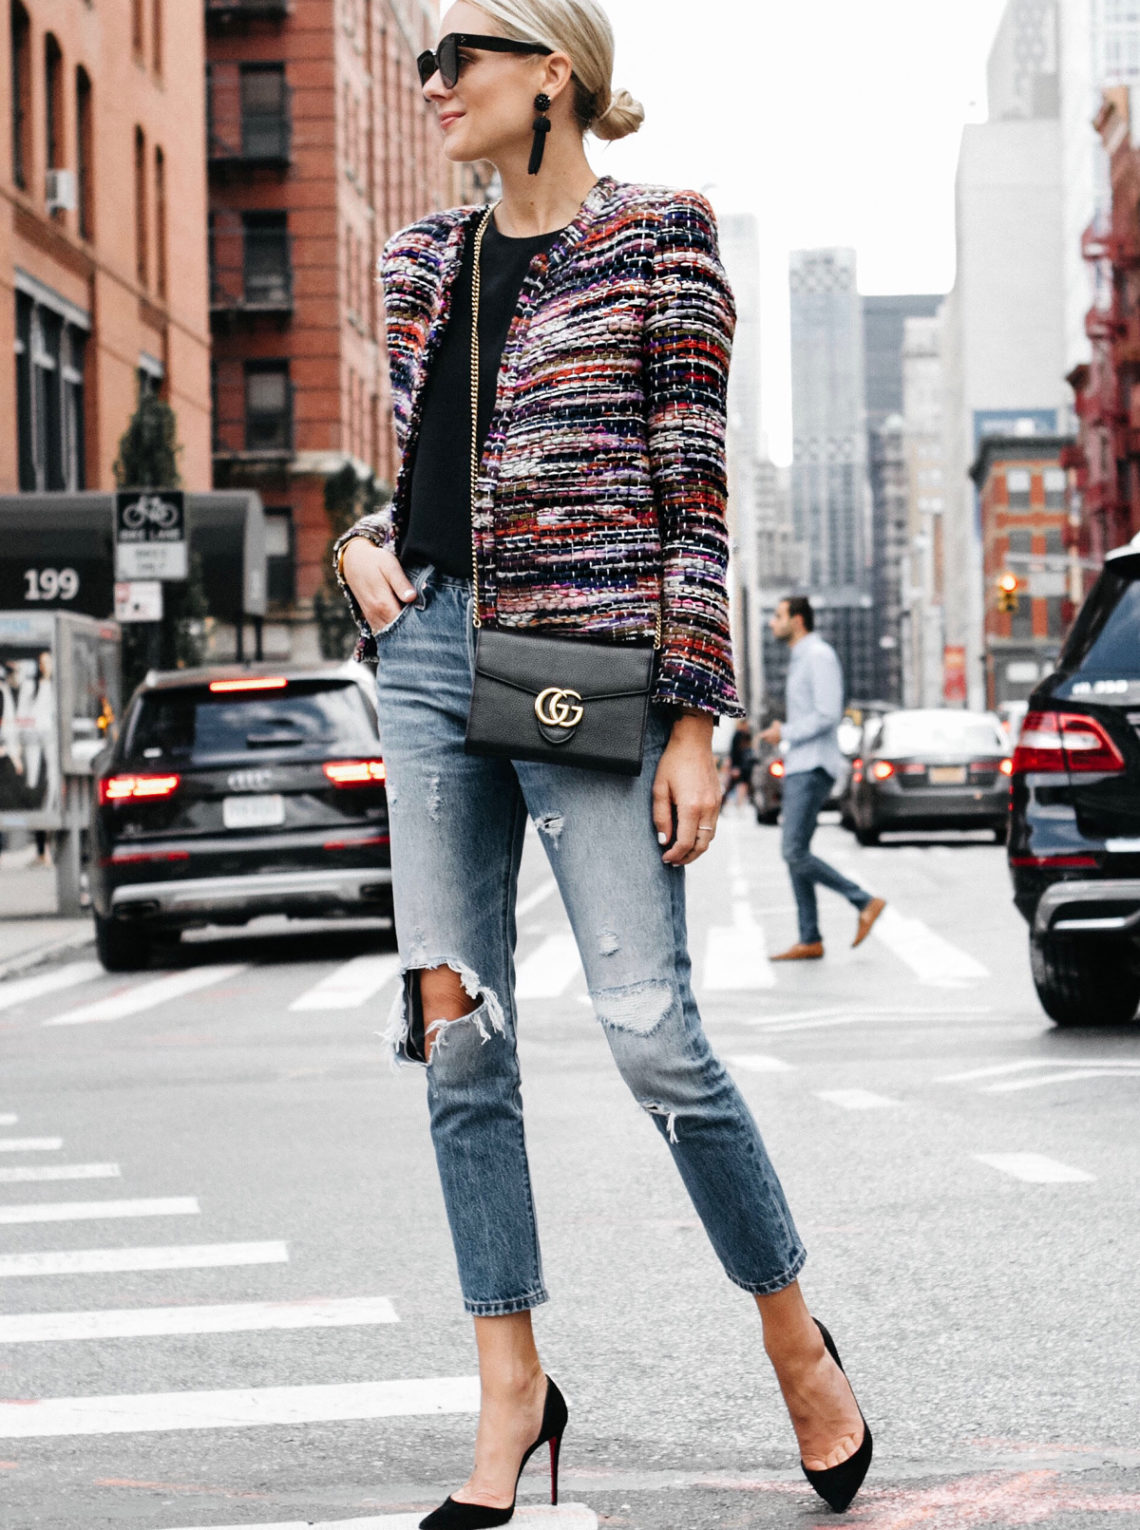 Blonde Woman Wearing IRO Multicolored Tweed Jacket Denim Ripped Skinny Jeans Gucci Marmont Handbag Christian Louboutin Black Pumps Fashion Jackson Dallas Blogger Fashion Blogger Street Style NYFW